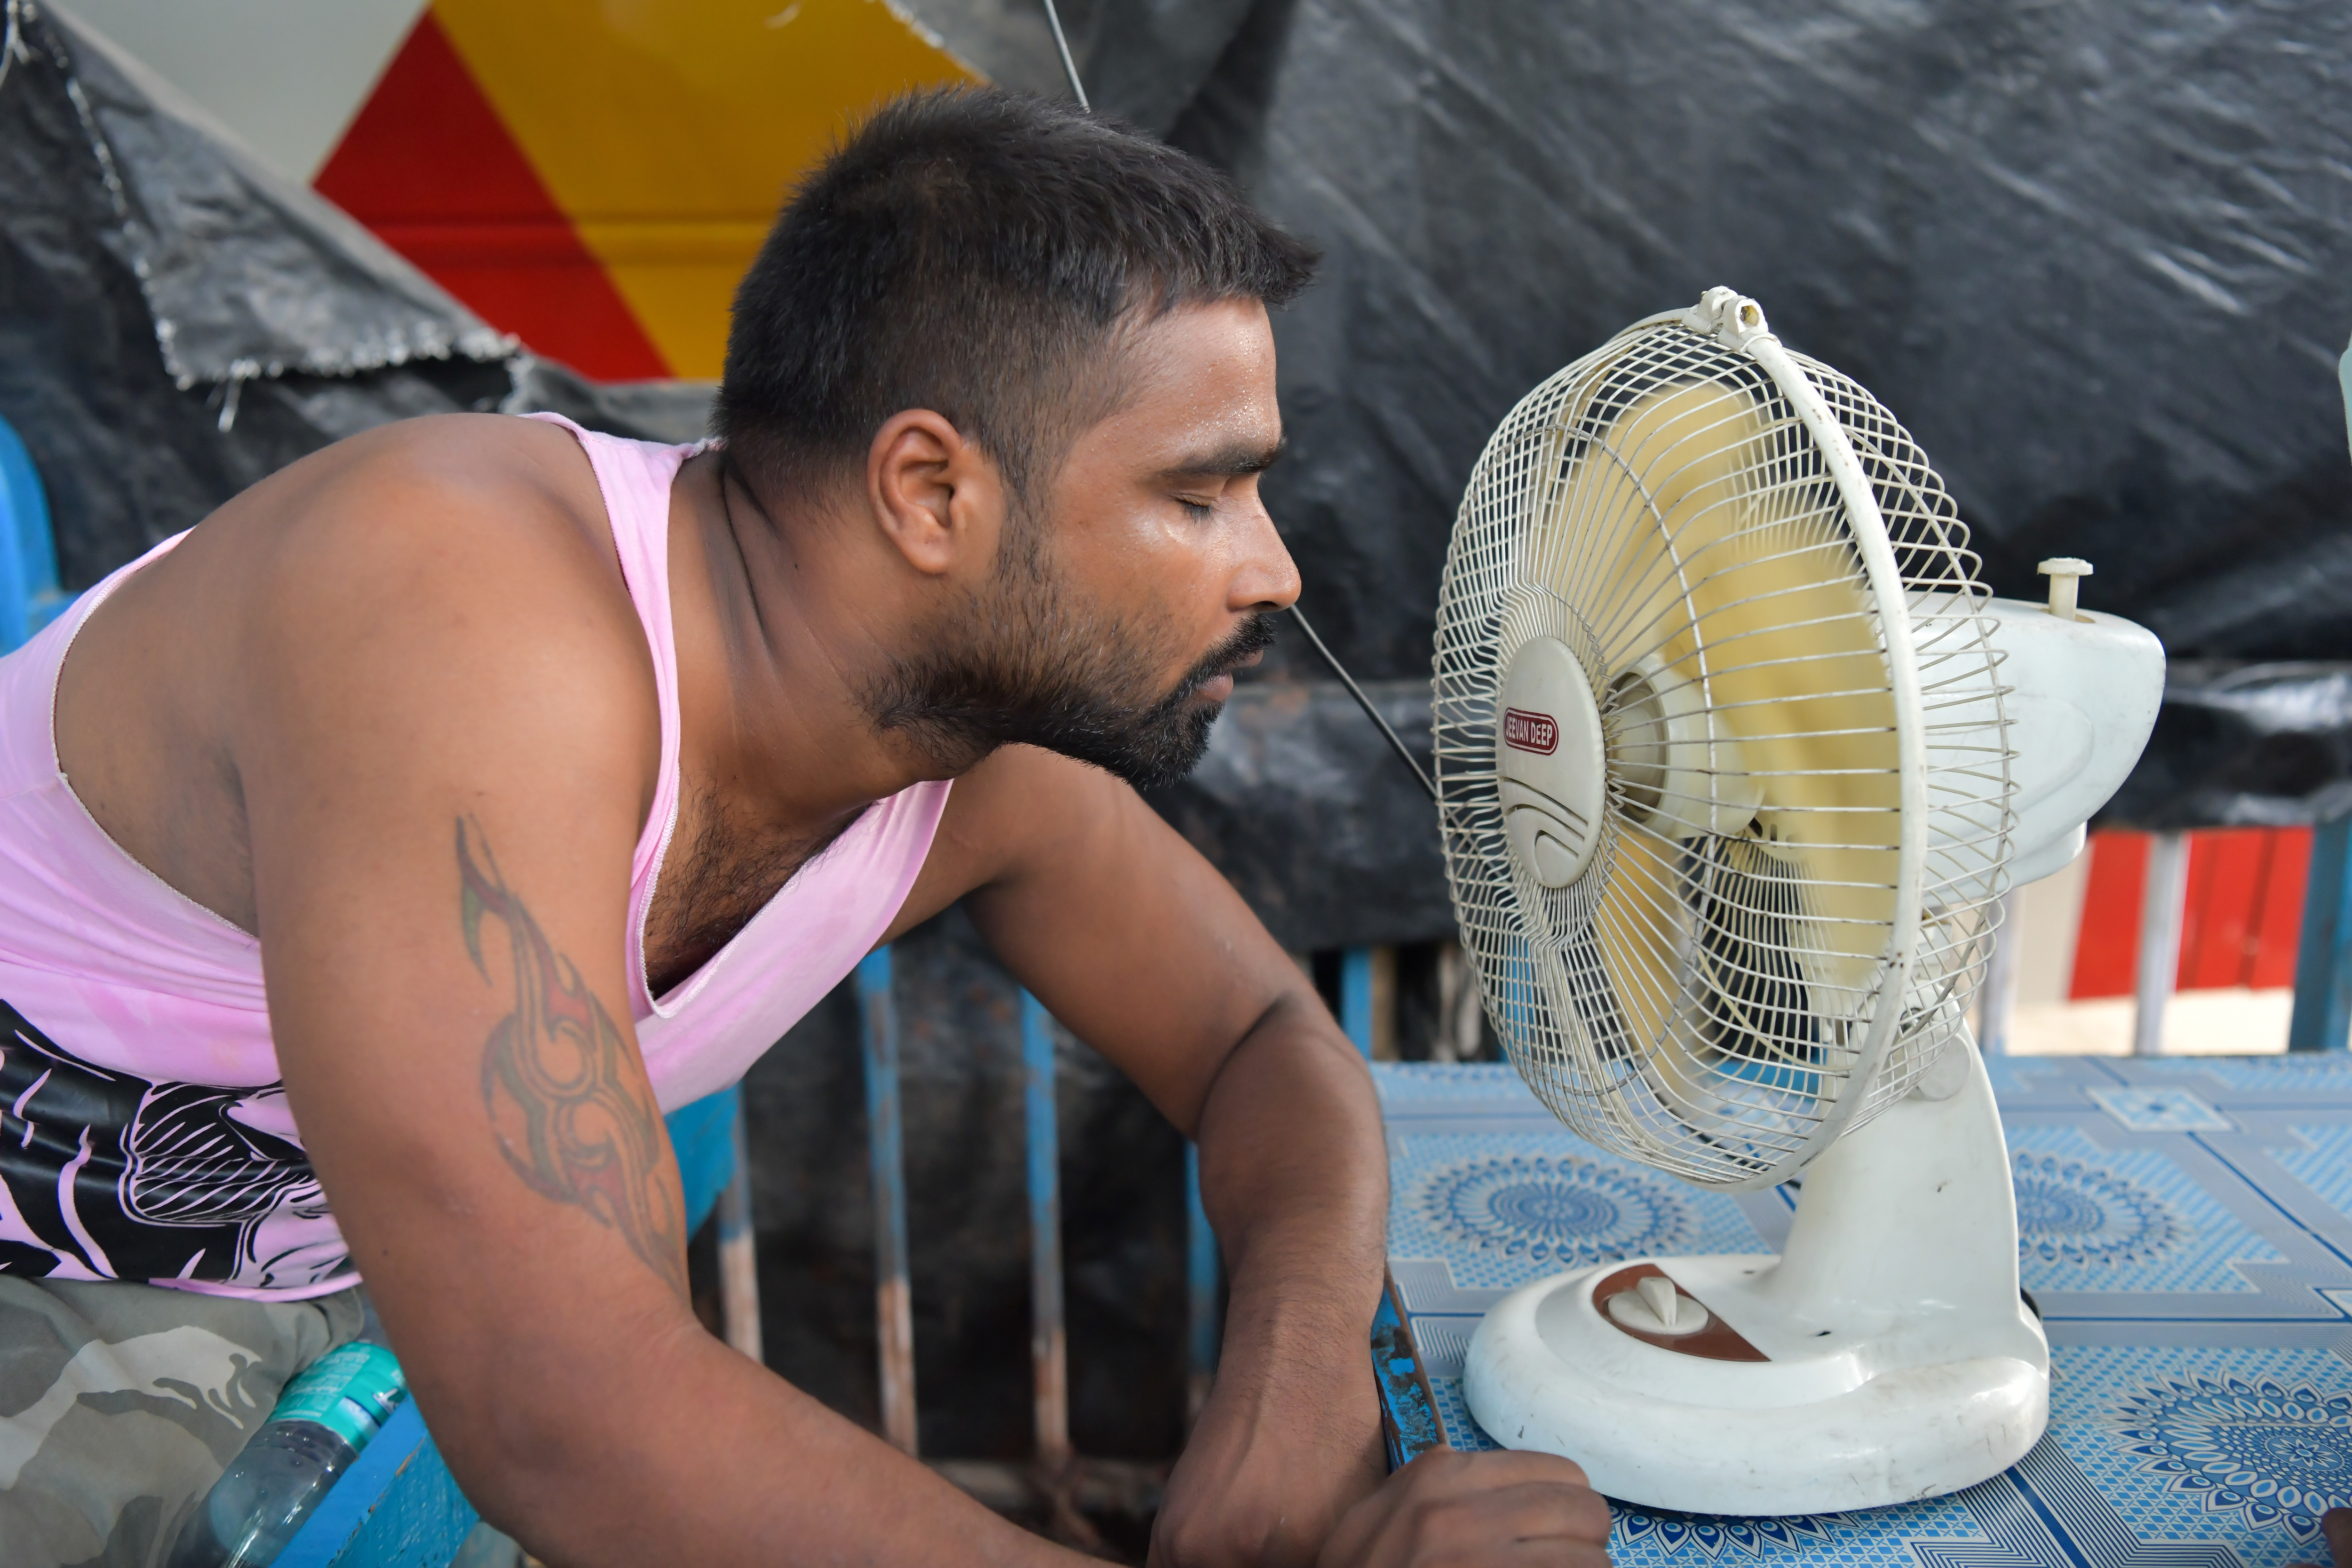 A man is seen taking a break from work cooling himself down...